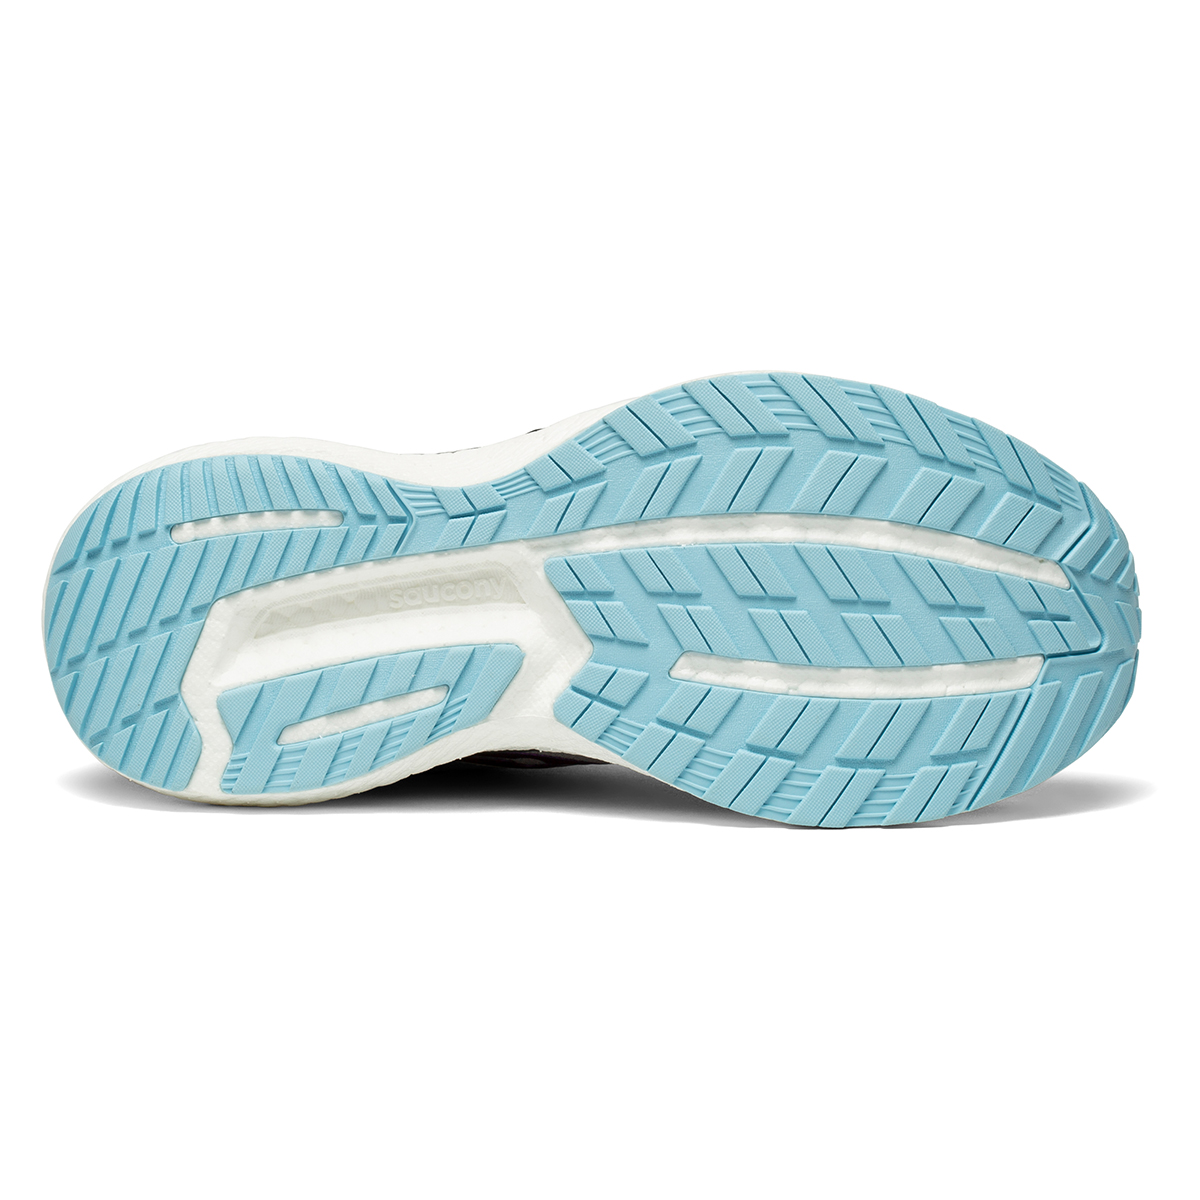 Women's Saucony Triumph 19 Running Shoe - Color: Alloy/Concord - Size: 6 - Width: Regular, Alloy/Concord, large, image 5